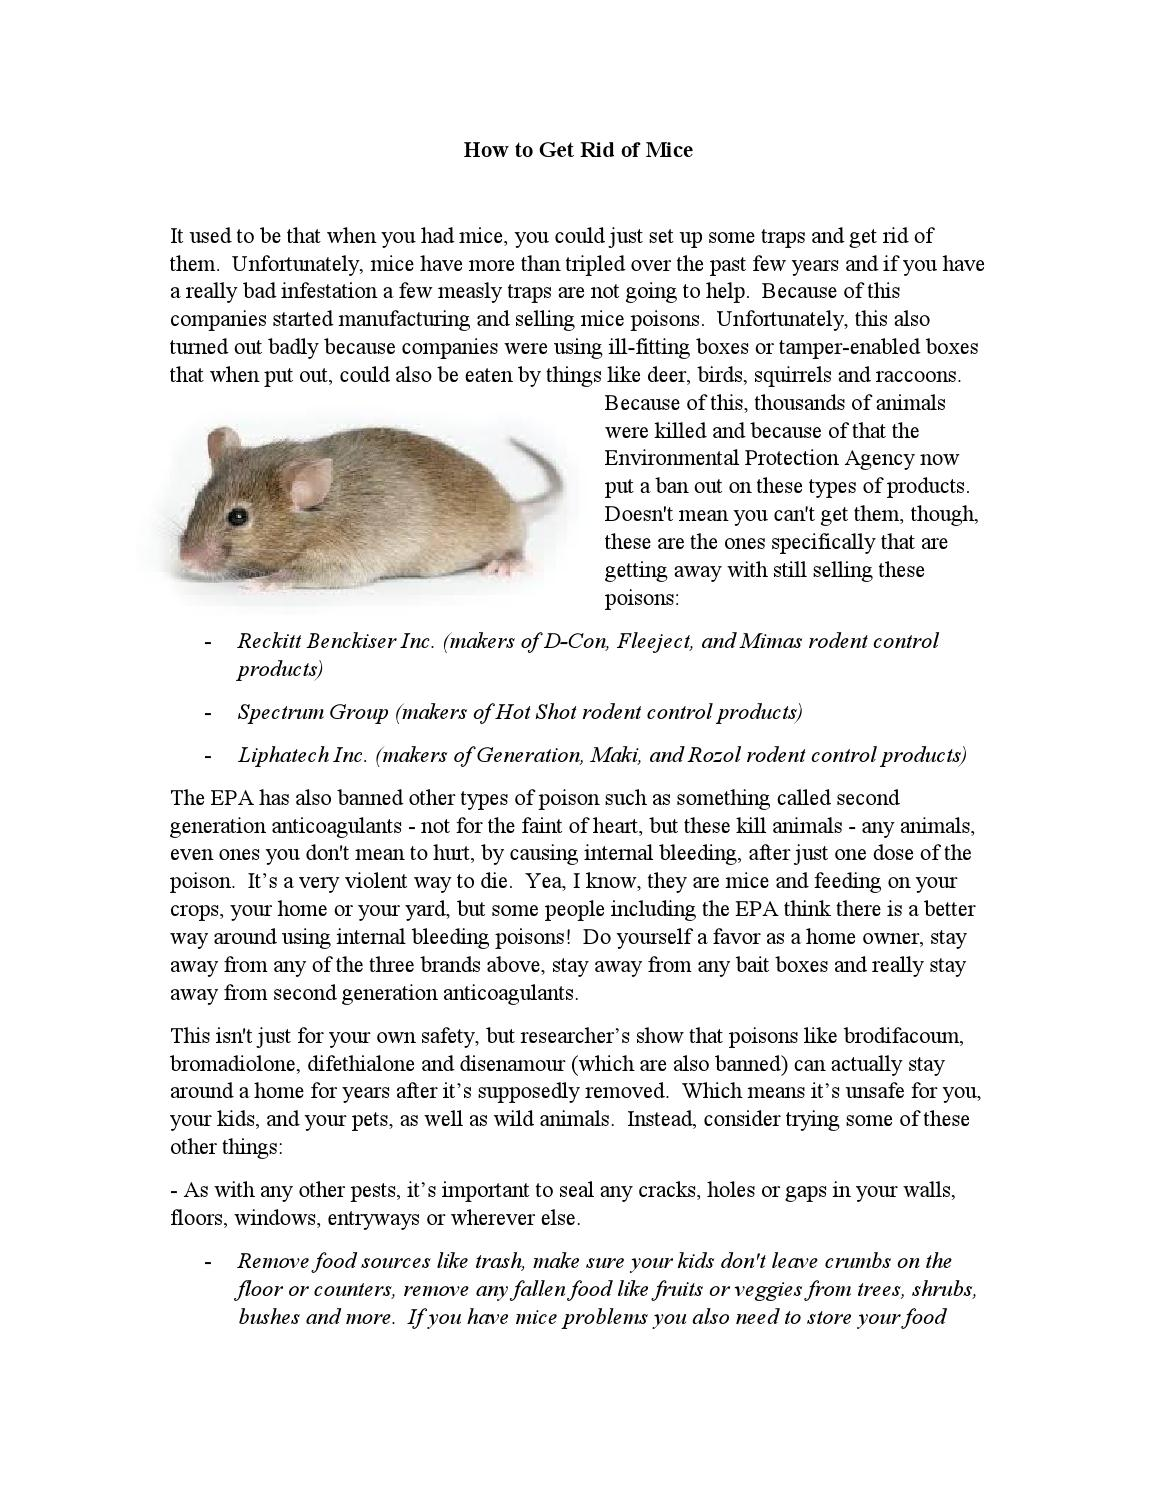 how to get rid of mice mobile home